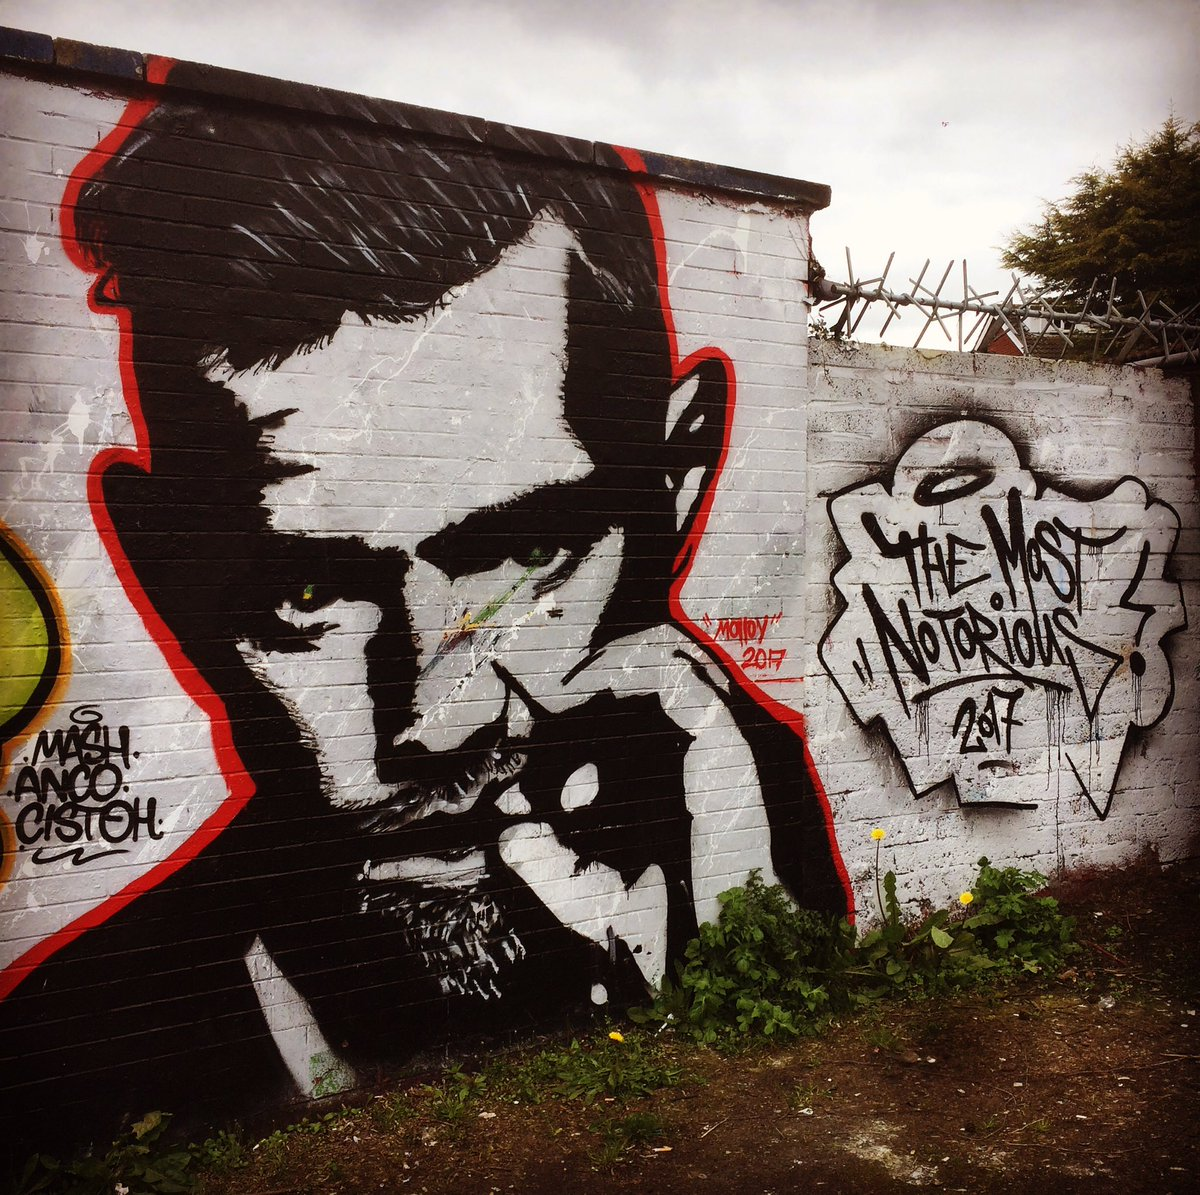 Just spotted this in Belfast! @TheNotoriousMMA #ConorMcGregor https://t.co/5j0xqQRHHz